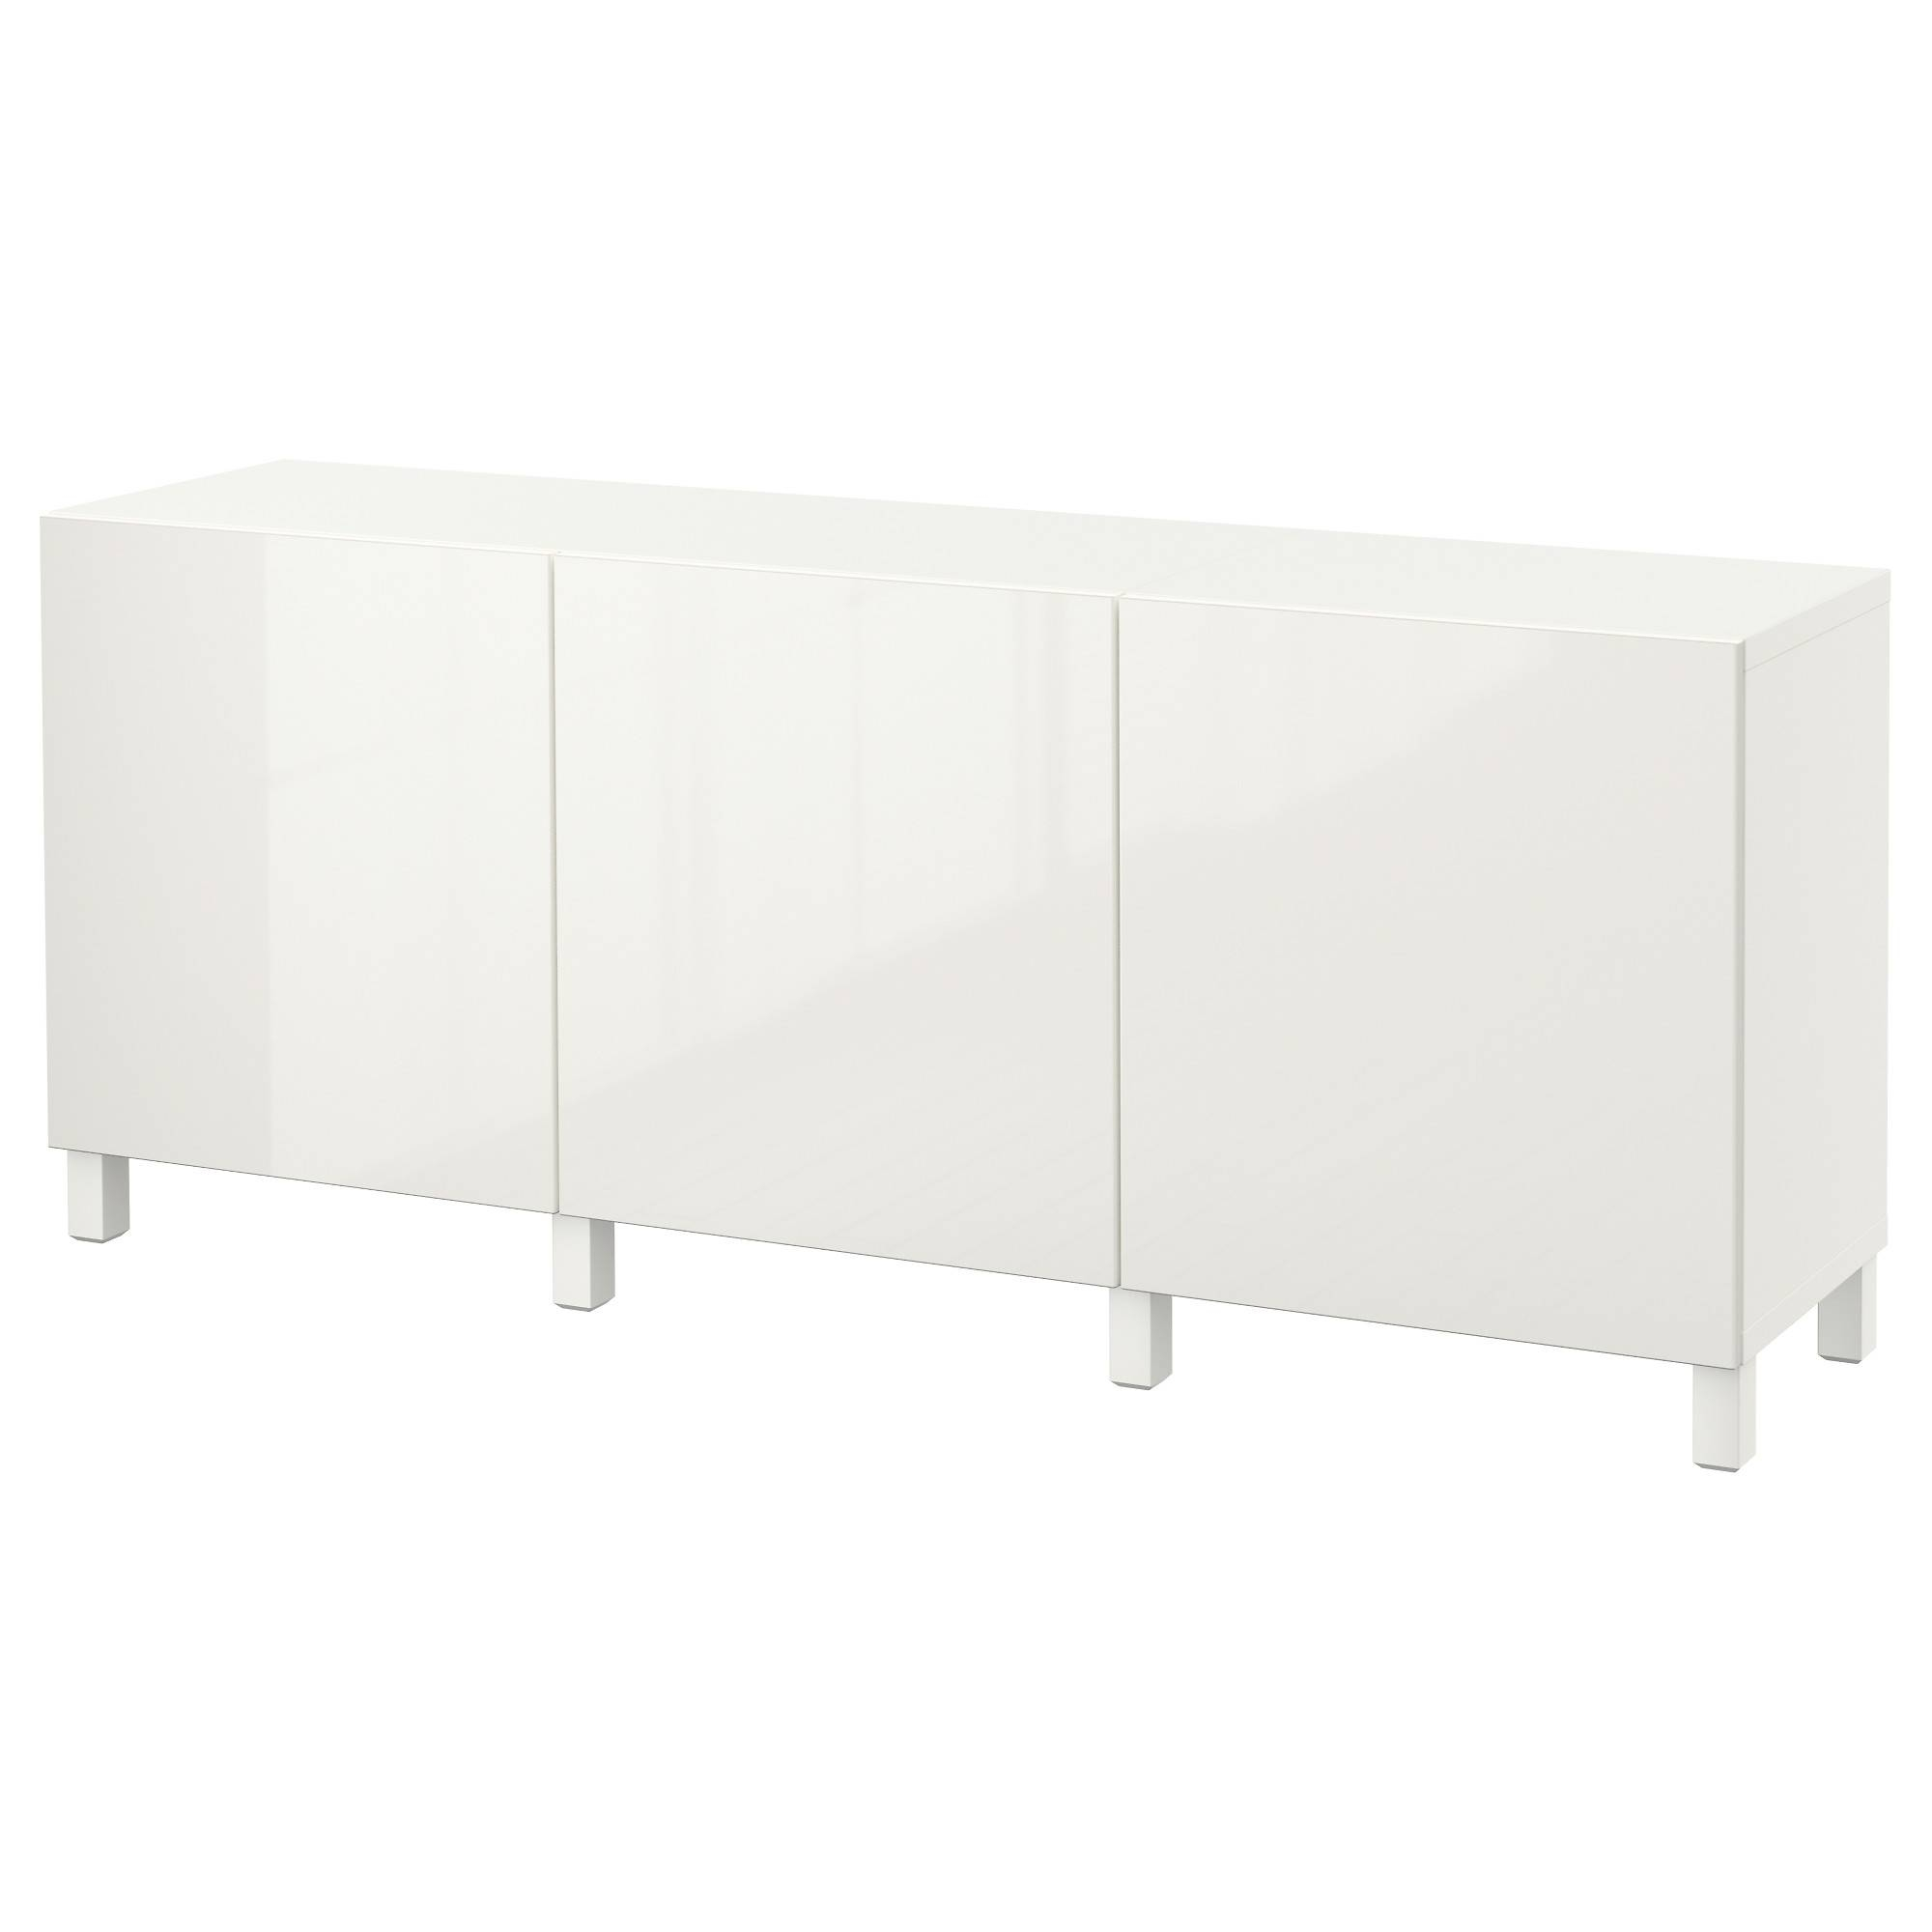 Buffet Tables & Sideboards - Ikea intended for White Sideboard Furniture (Image 5 of 30)